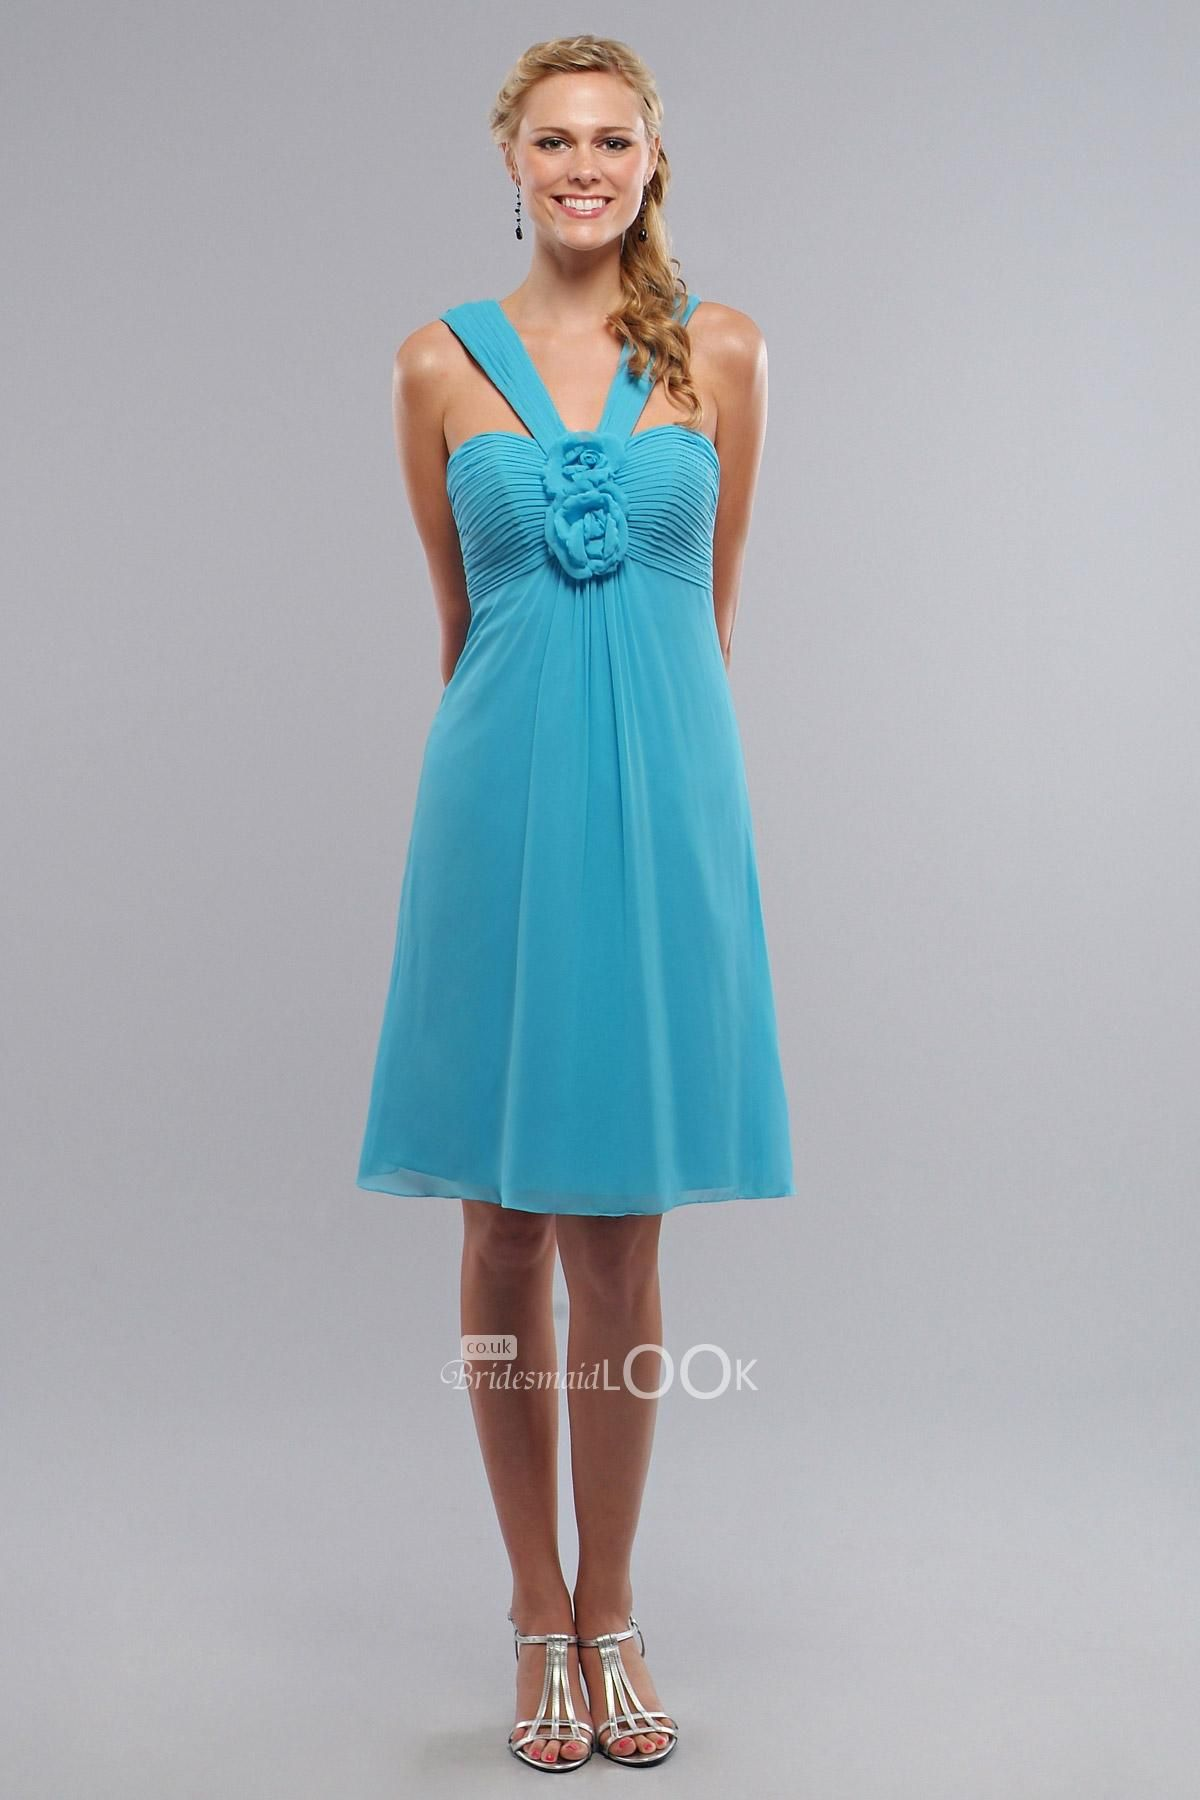 Turquoise blue dress dress yp 1000 images about blue and turquoise wedding theme on pinterest ombrellifo Choice Image